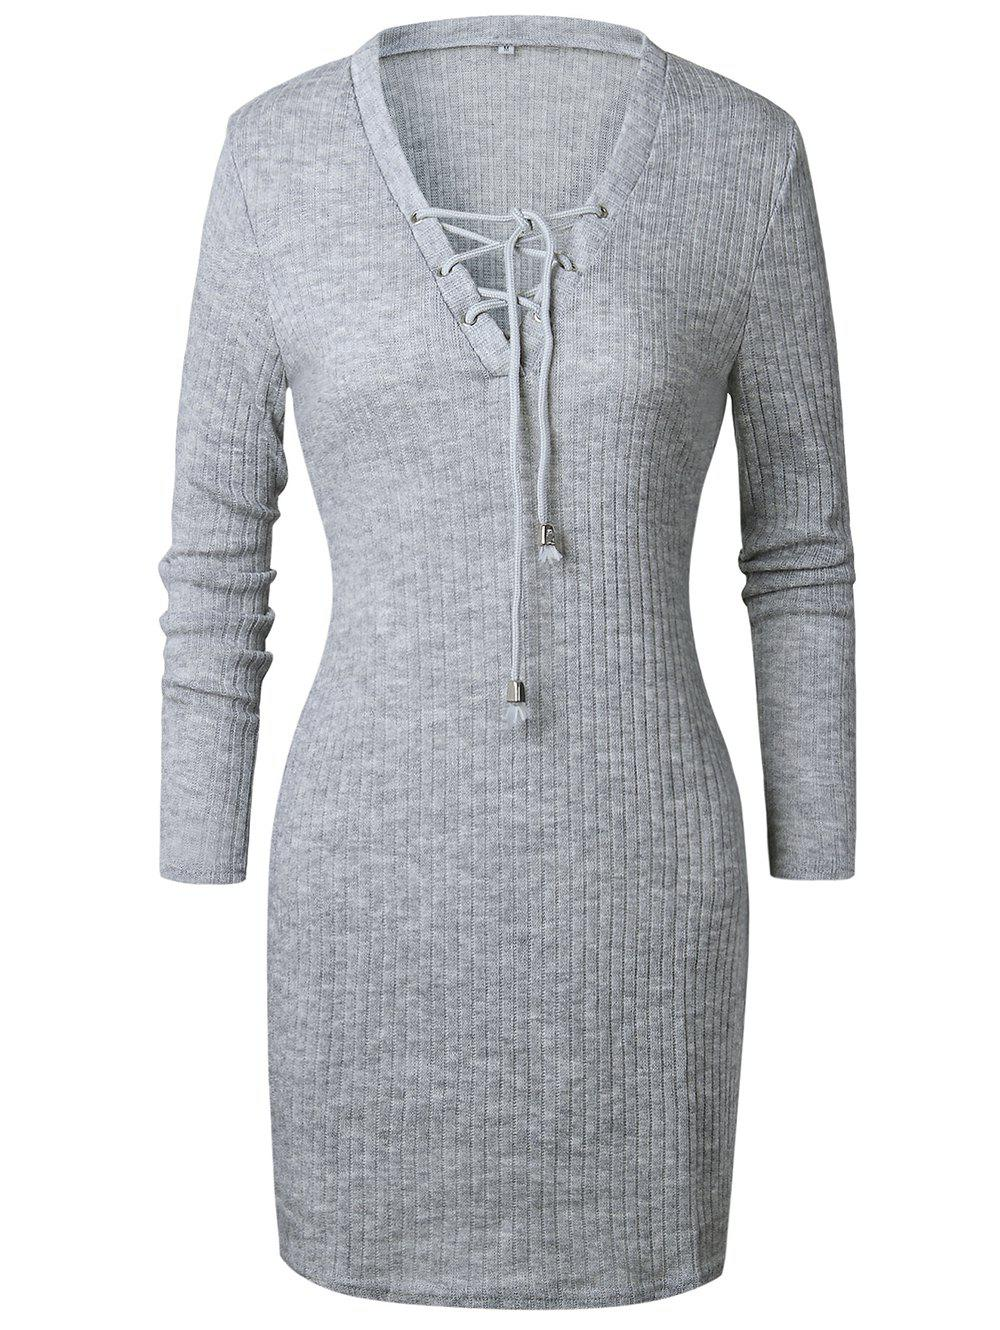 Outfits Women Fashion  Sweater Dress V-neck Long Sleeve  Pencil Dress